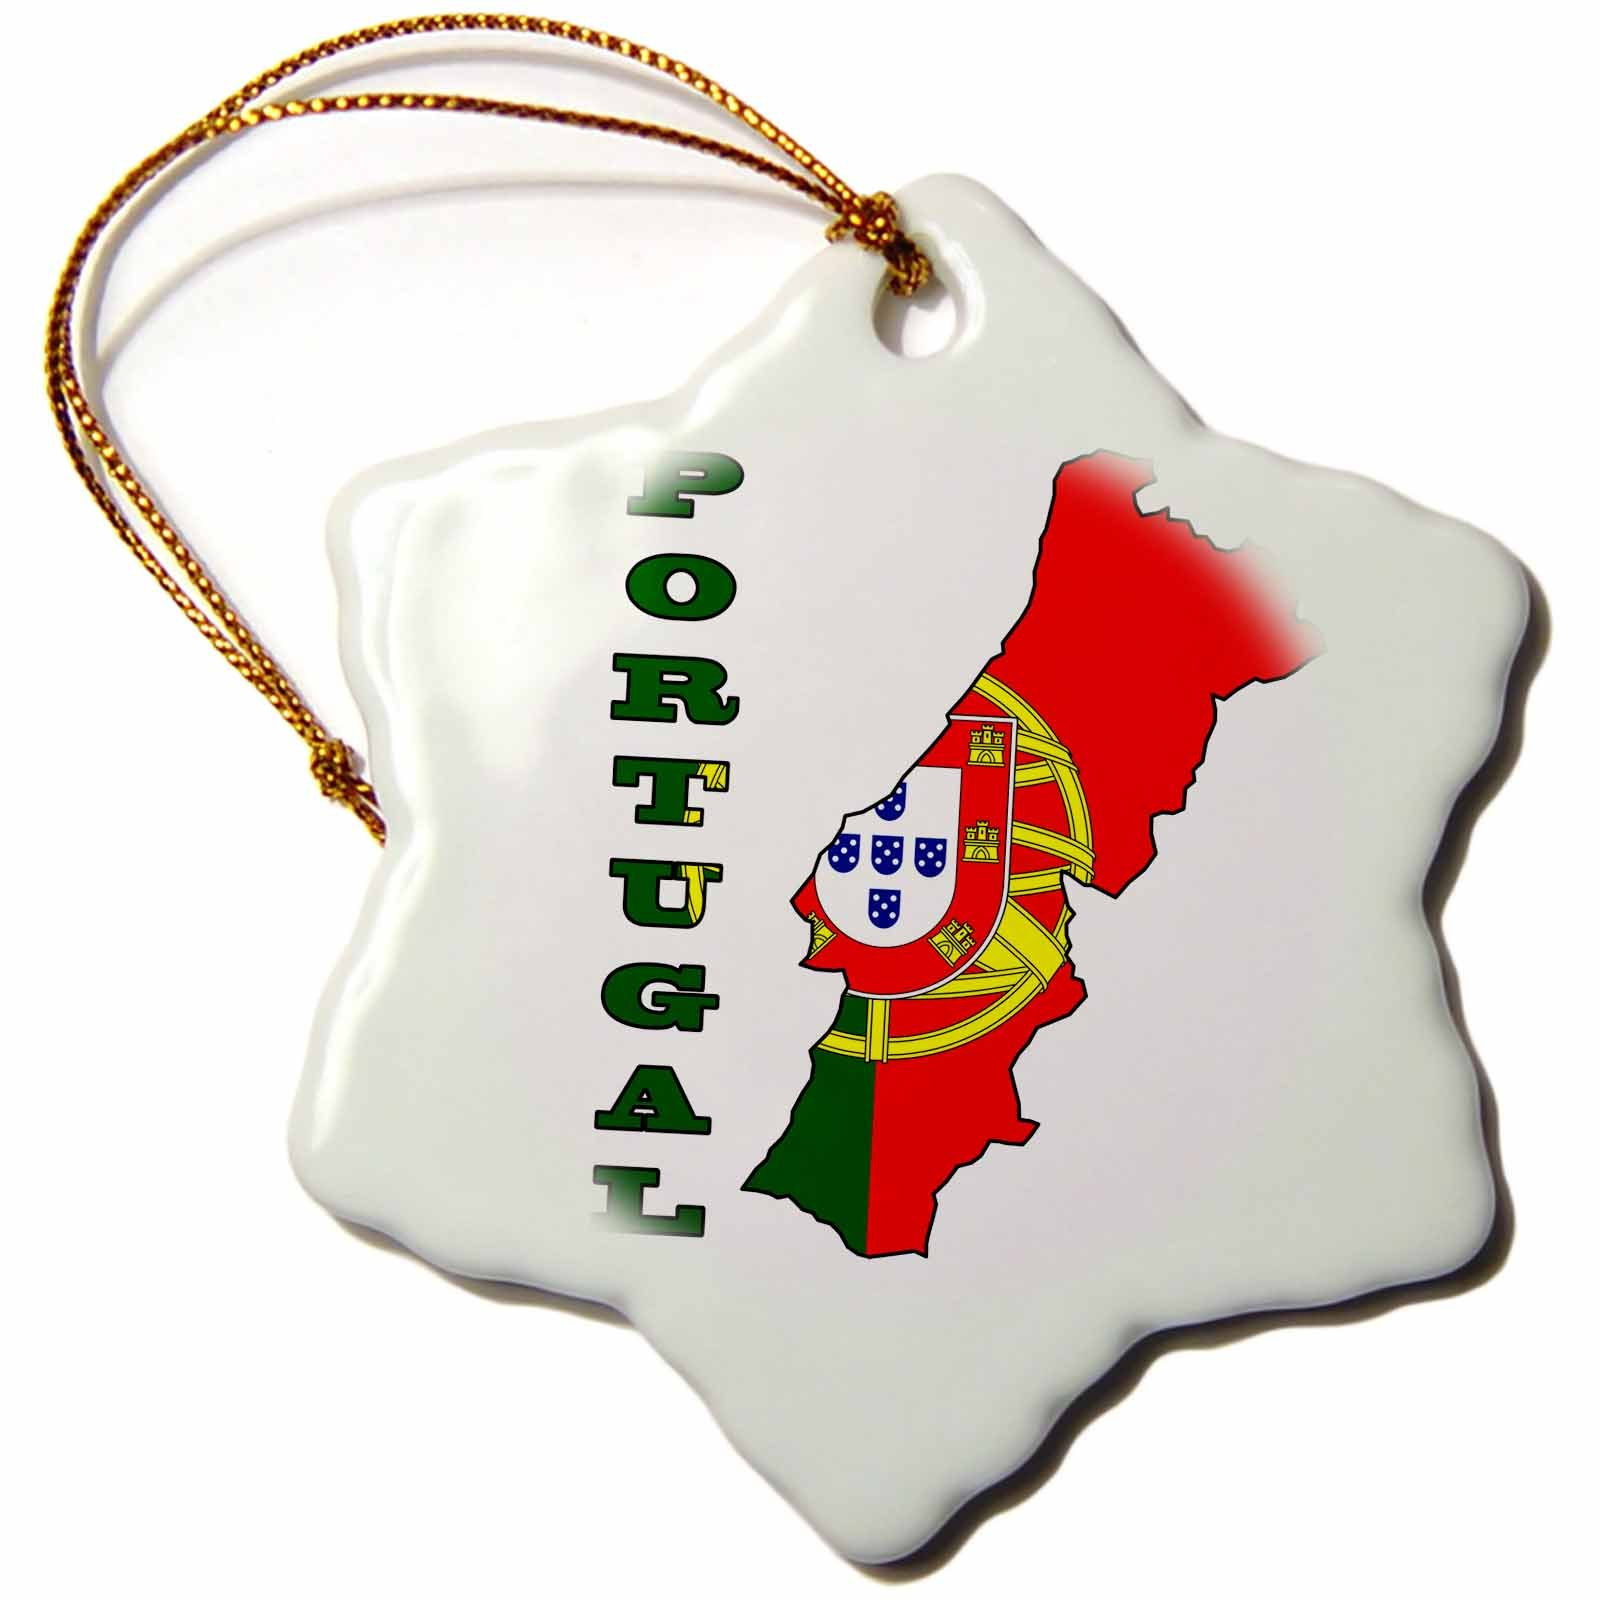 3dRose orn_63193_1 The Flag of Portugal in The Outline Map and Name of The Country, Portugal Snowflake Porcelain Ornament, 3-Inch